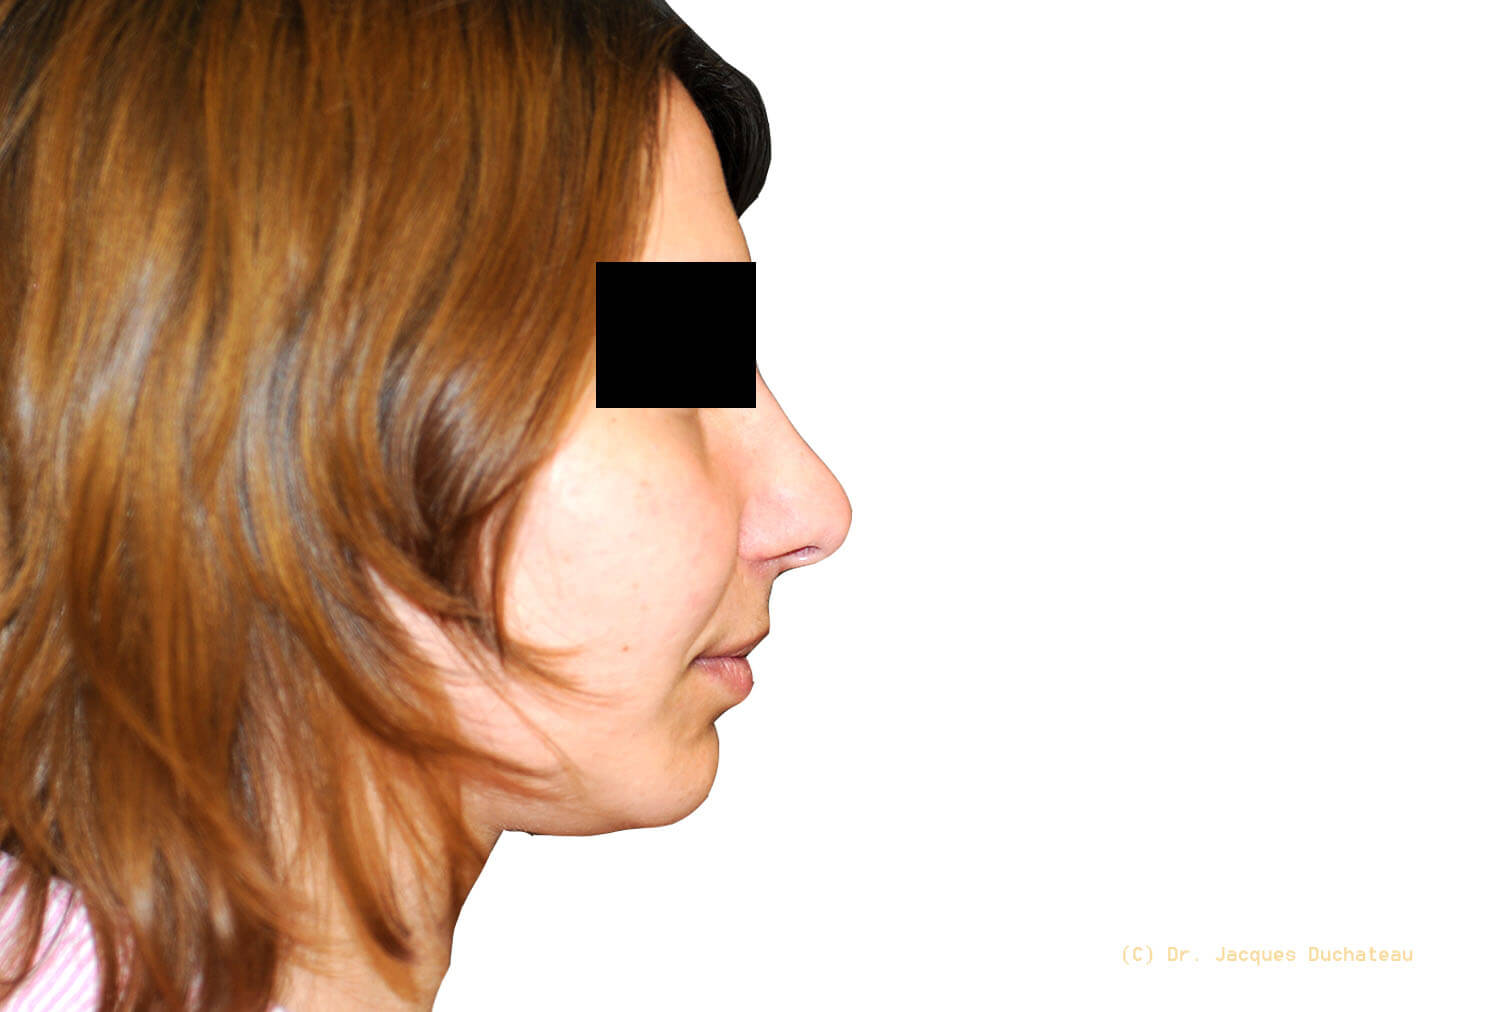 photo-avant-apres-rhinoplastie-exemple-2-2